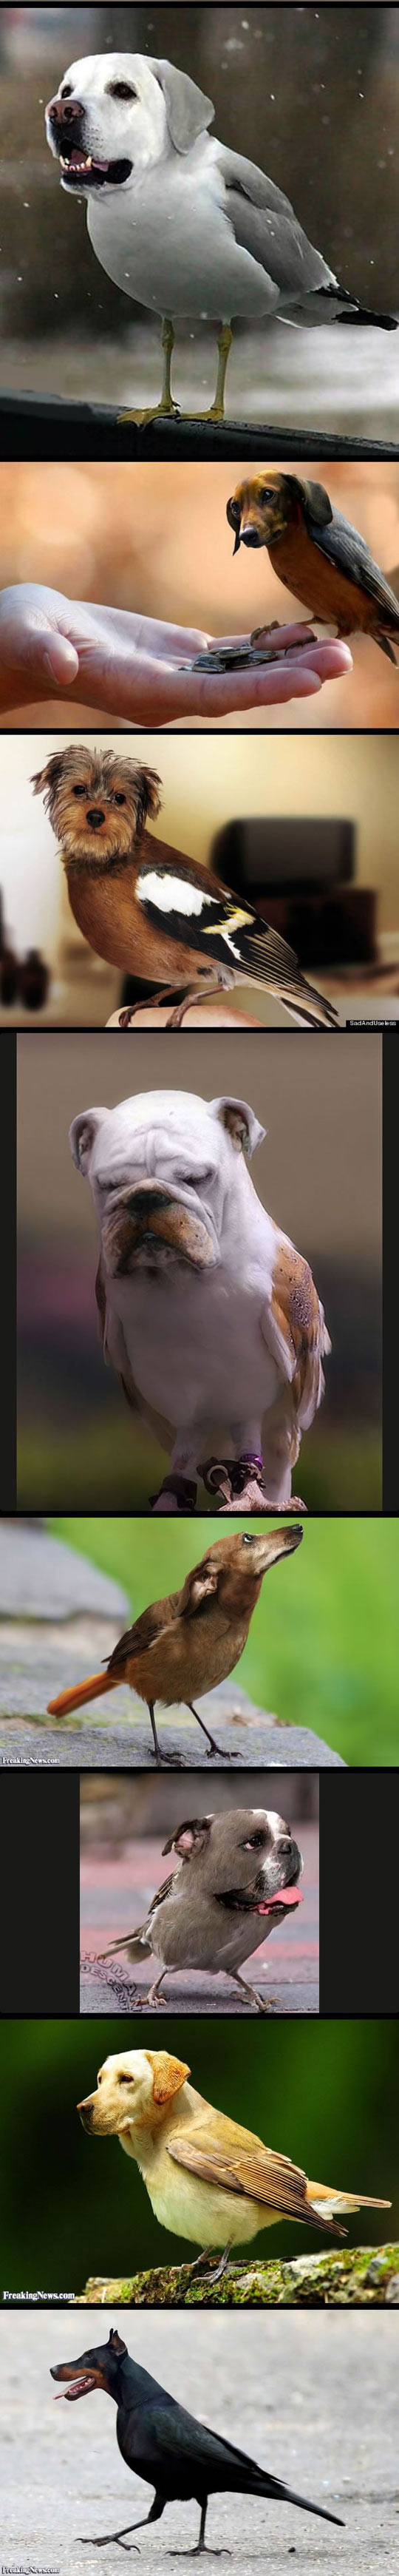 funny-mix-dog-heads-birds-bodies-duck